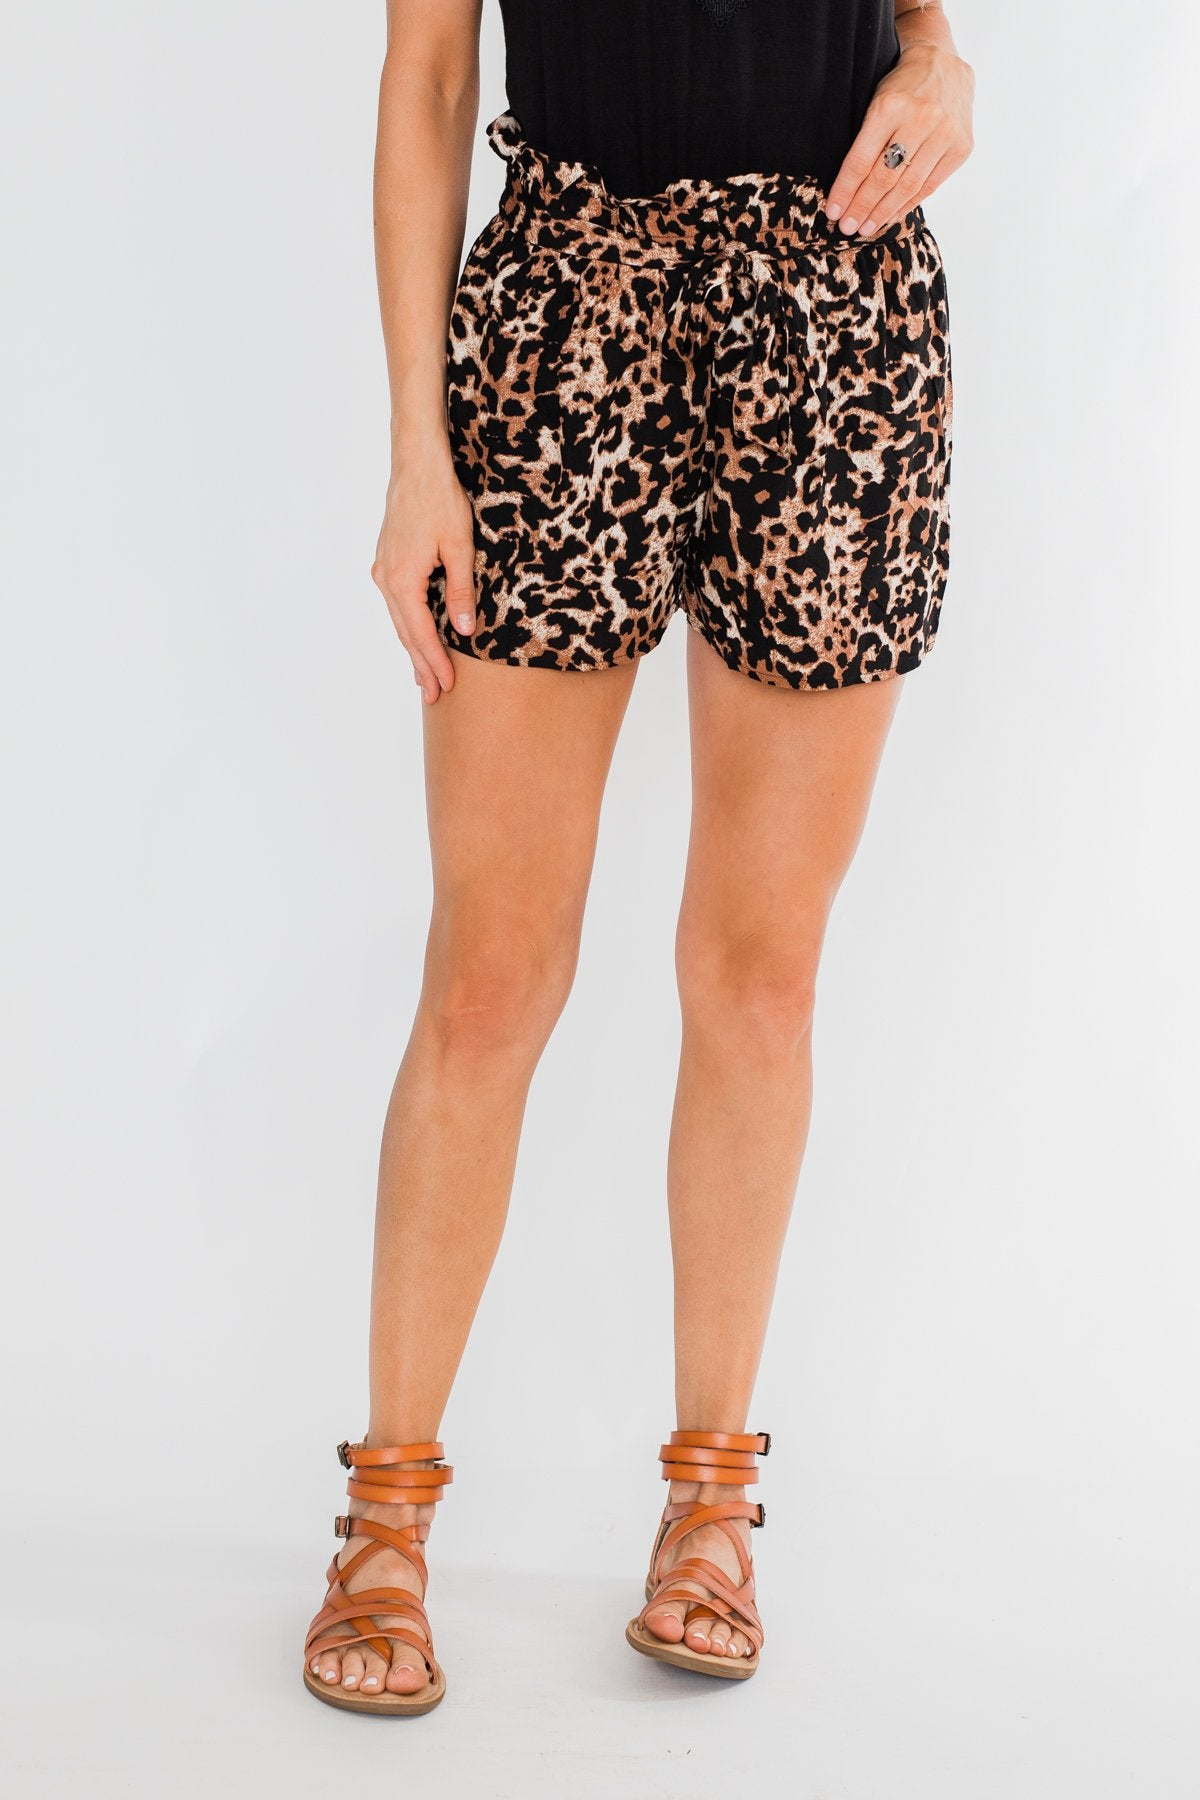 Feeling Wild Fashion Shorts- Leopard